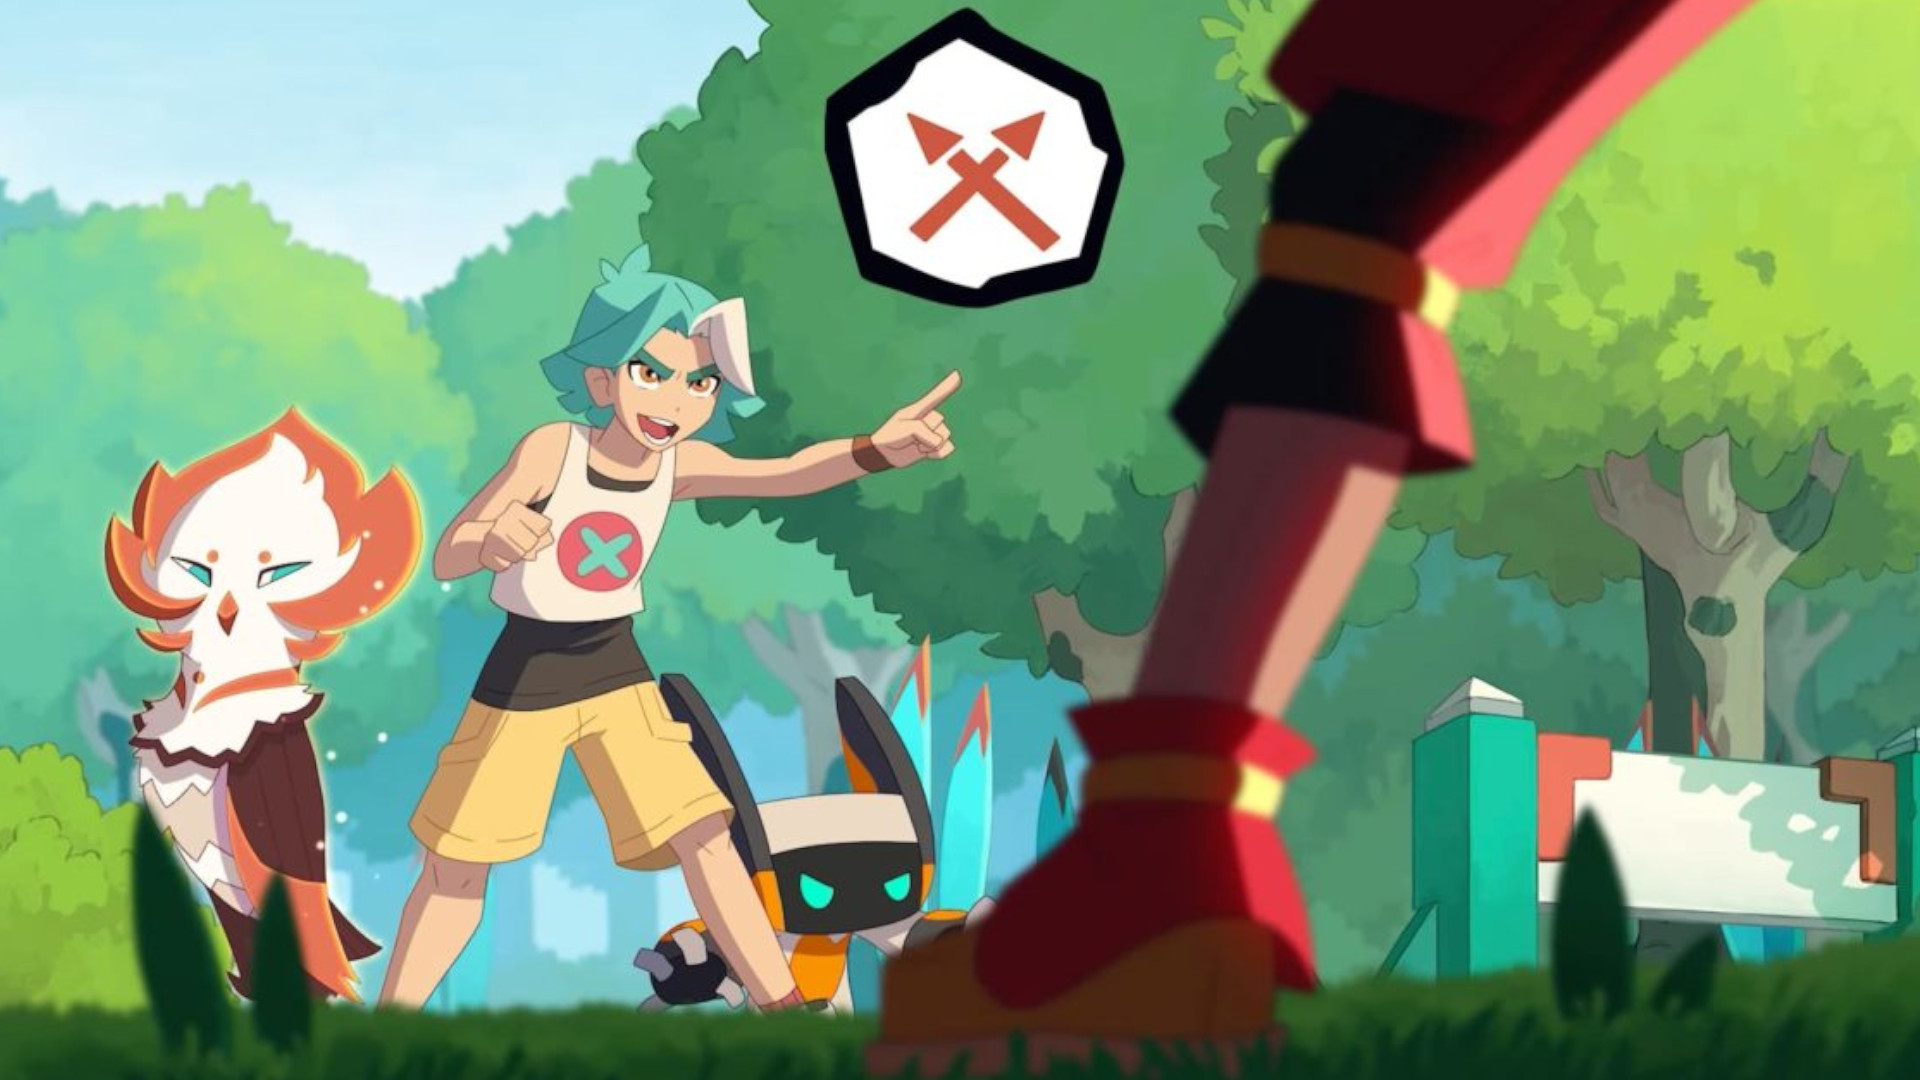 Temtem's big spring update is finally here, with ranked matchmaking